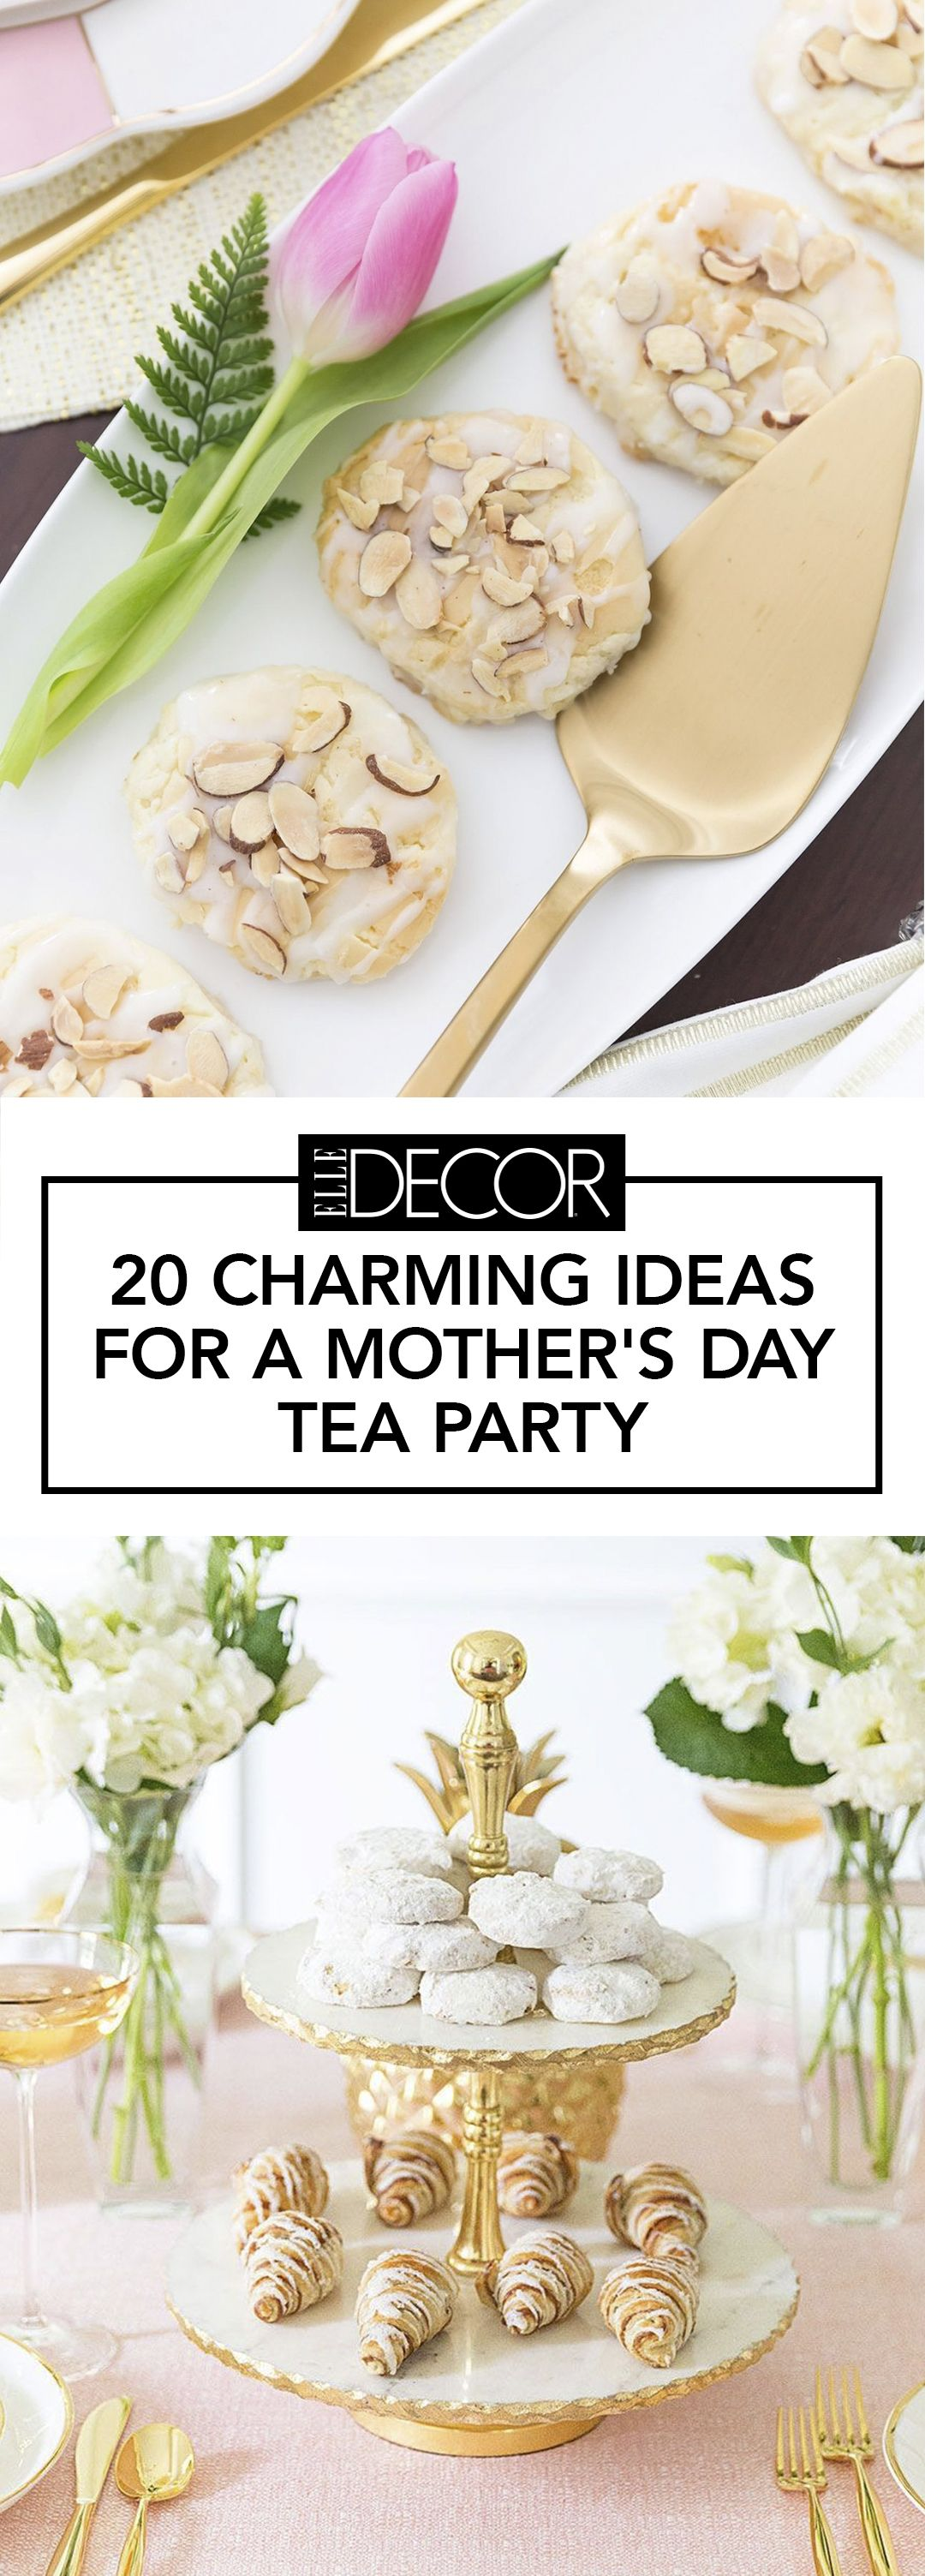 20 Best Tea Party Ideas - Mother\'s Day Ideas